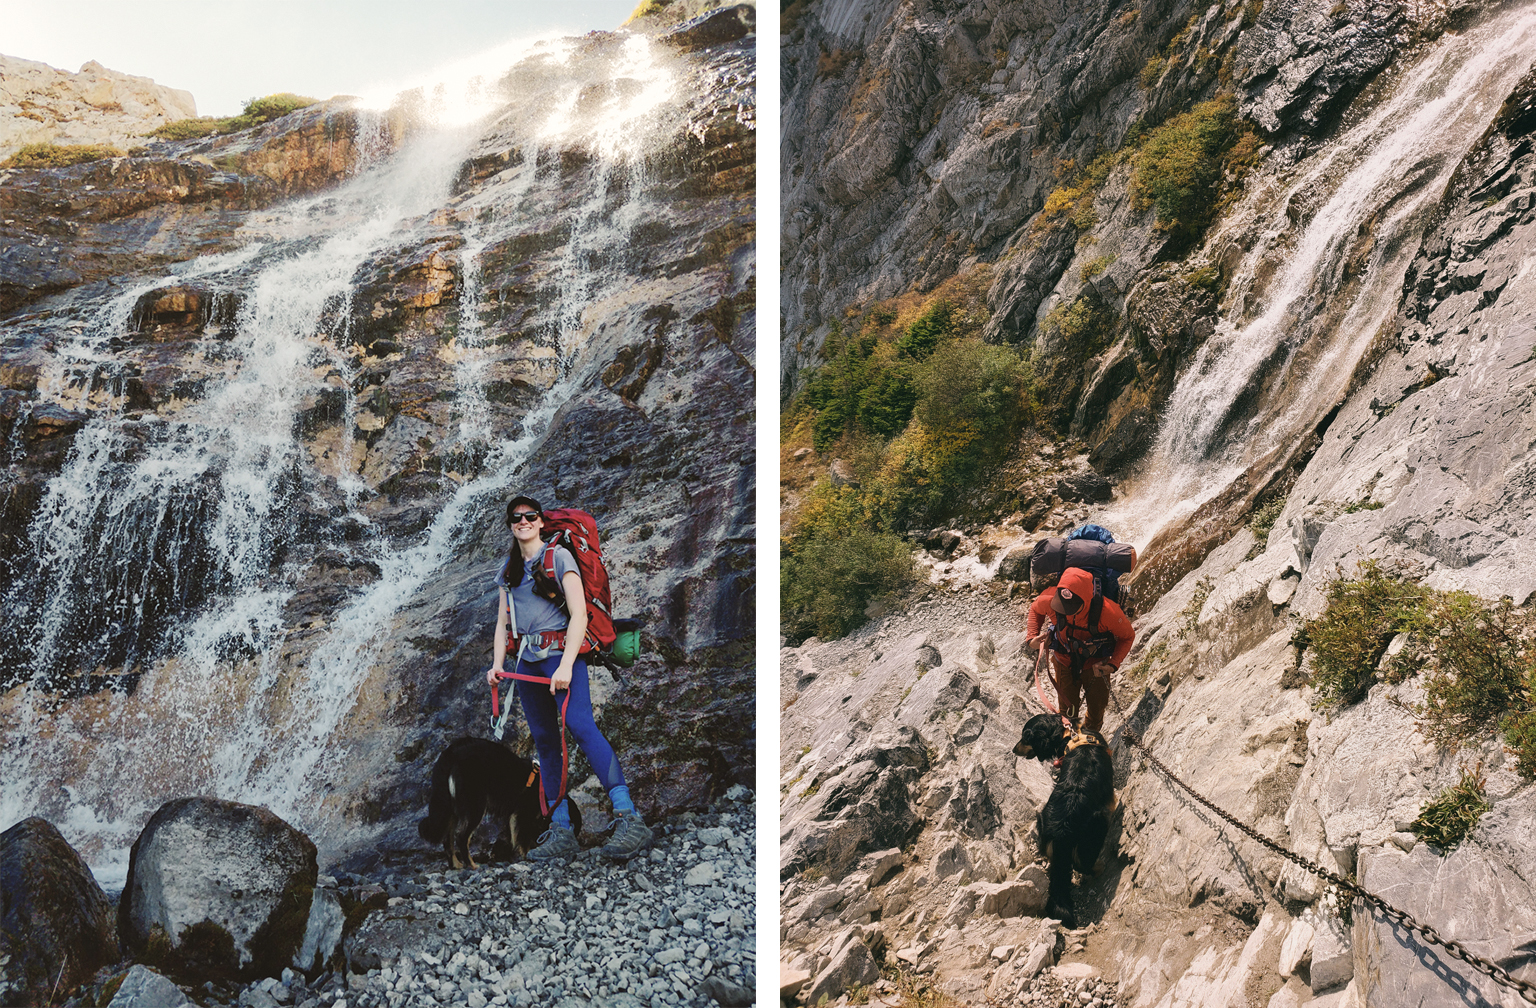 hiker and dog standing at the base of a small waterfall (left) and hiker with dog climbing up chains (right) at carnarvon lake